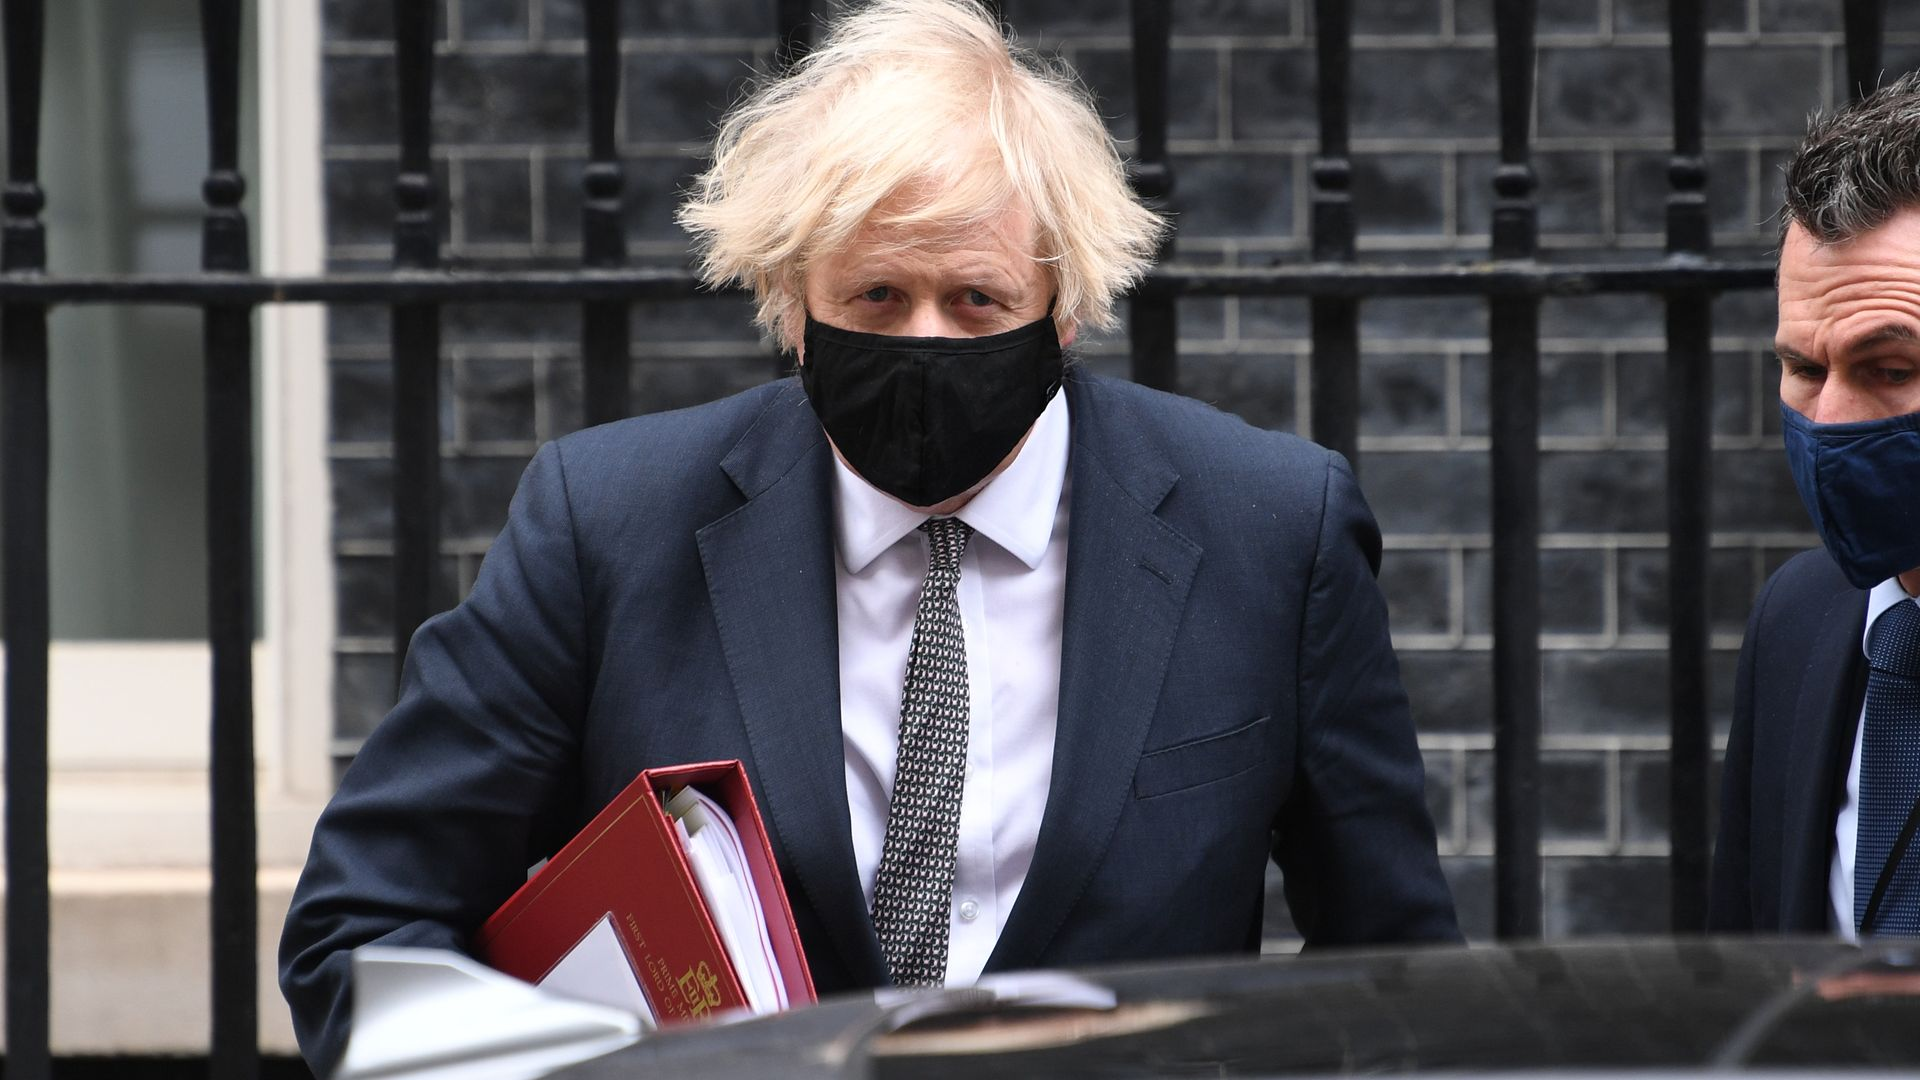 Prime minister Boris Johnson leaves 10 Downing Street to attend Prime Minister's Questions at the Houses of Parliament - Credit: PA